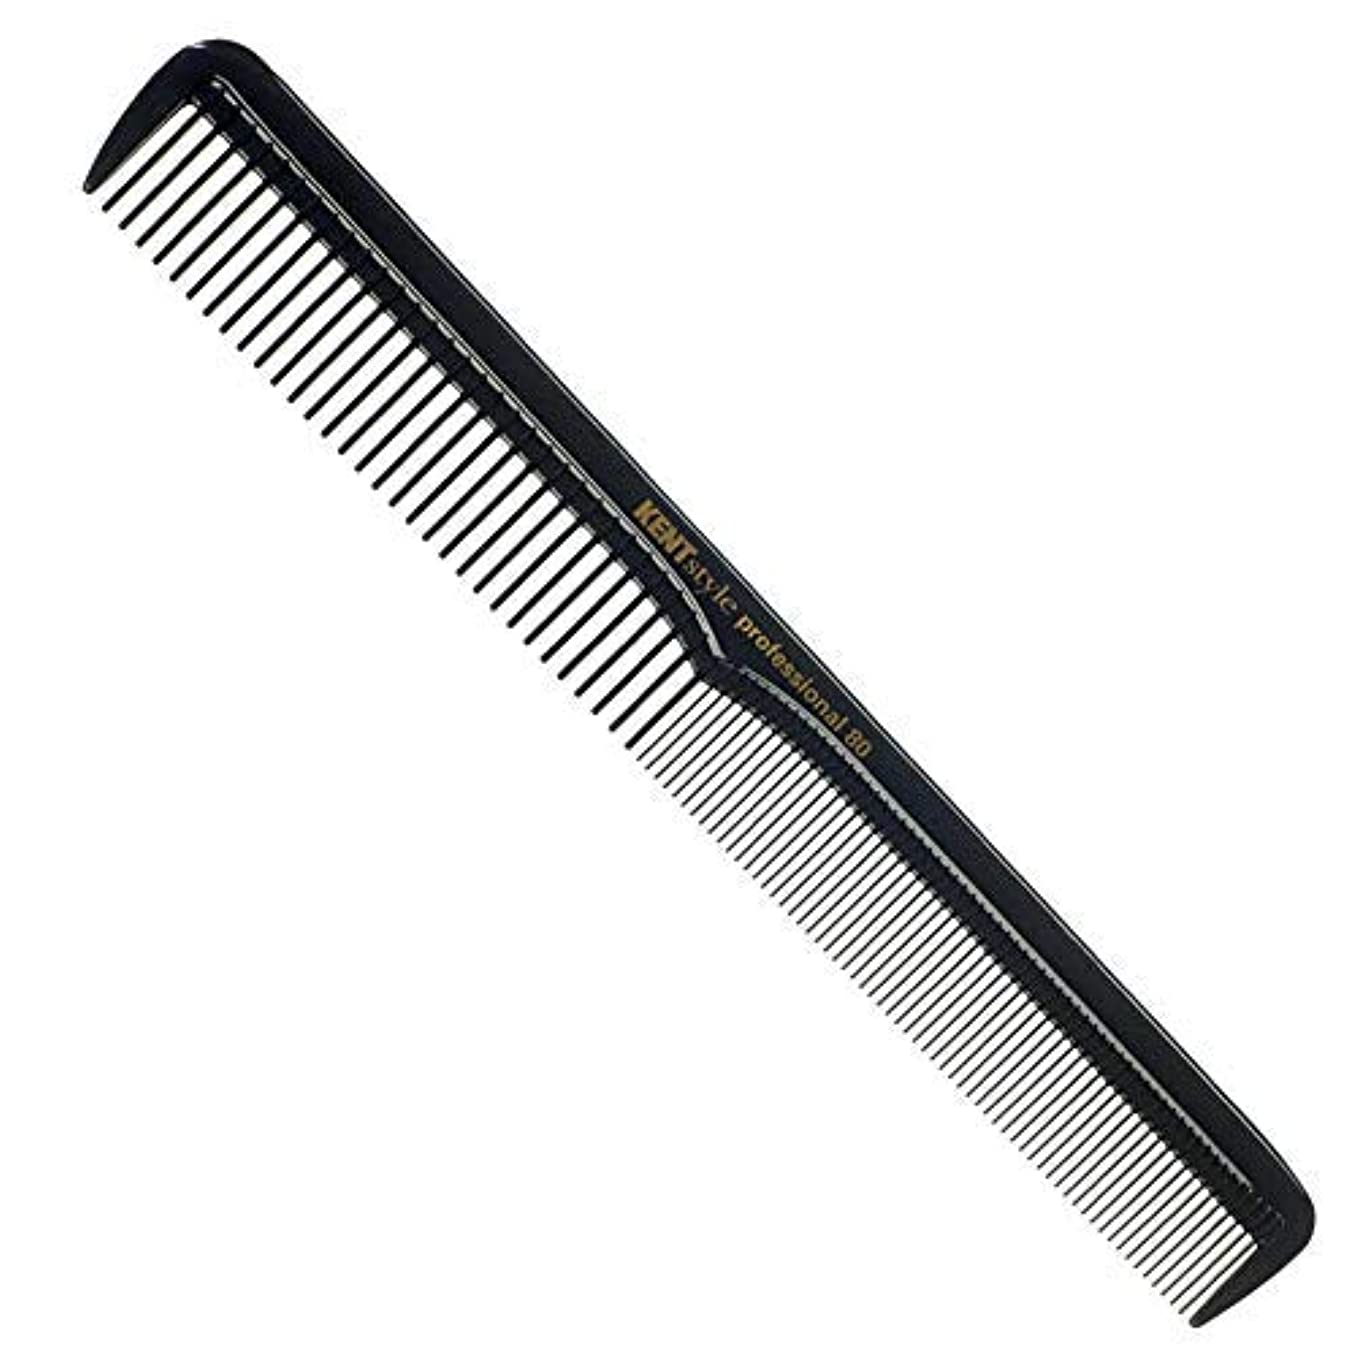 船上ニックネーム解釈するKent Style Professional Combs (Black) - Anti-static, Unbreakable & Heat Resistant (SPC80) [並行輸入品]